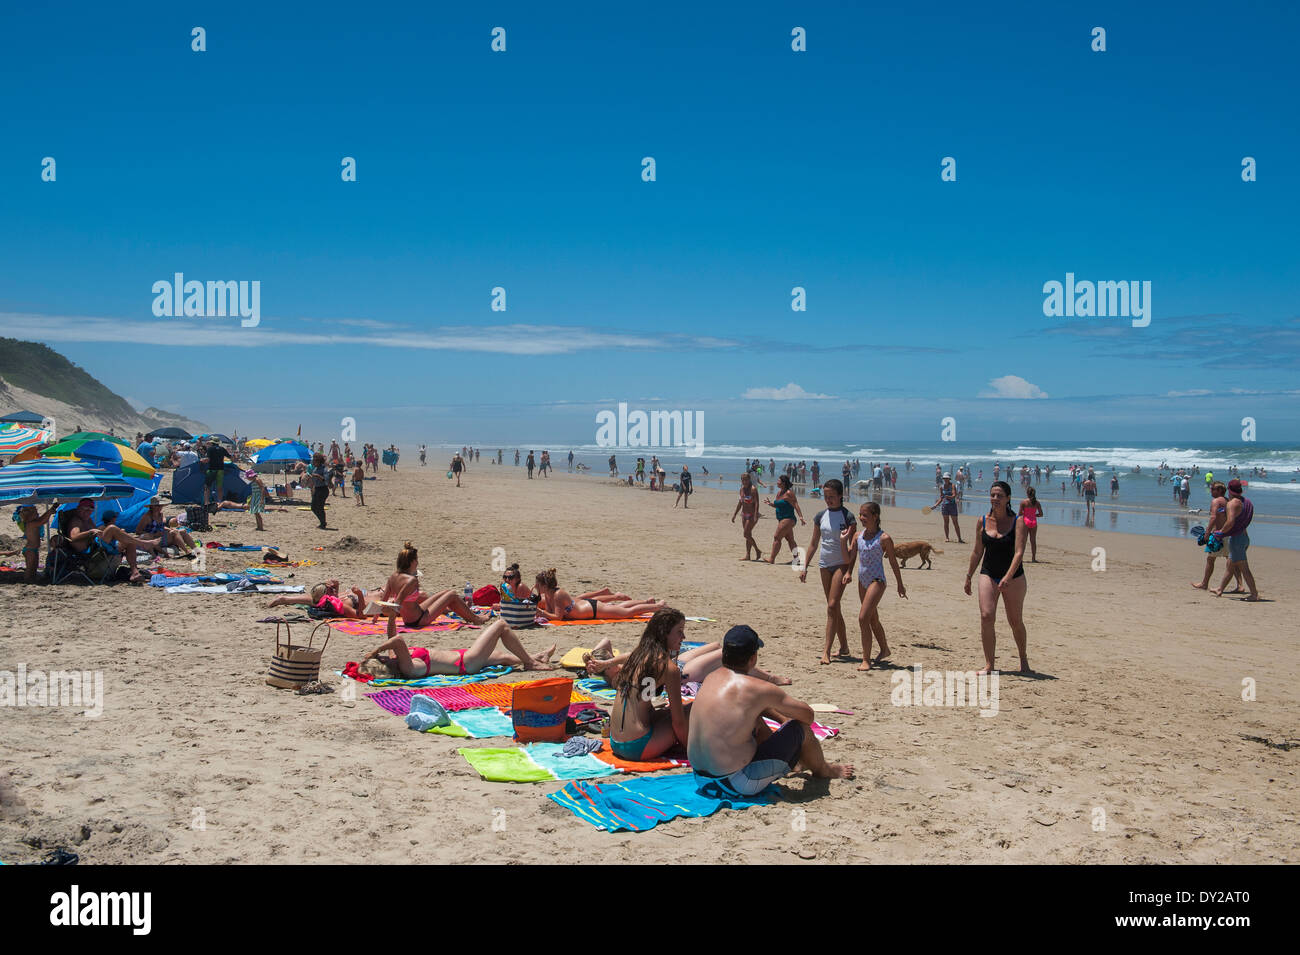 Holidaymakers walking on the beach of Morgan Bay, Eastern Cape, South Africa - Stock Image